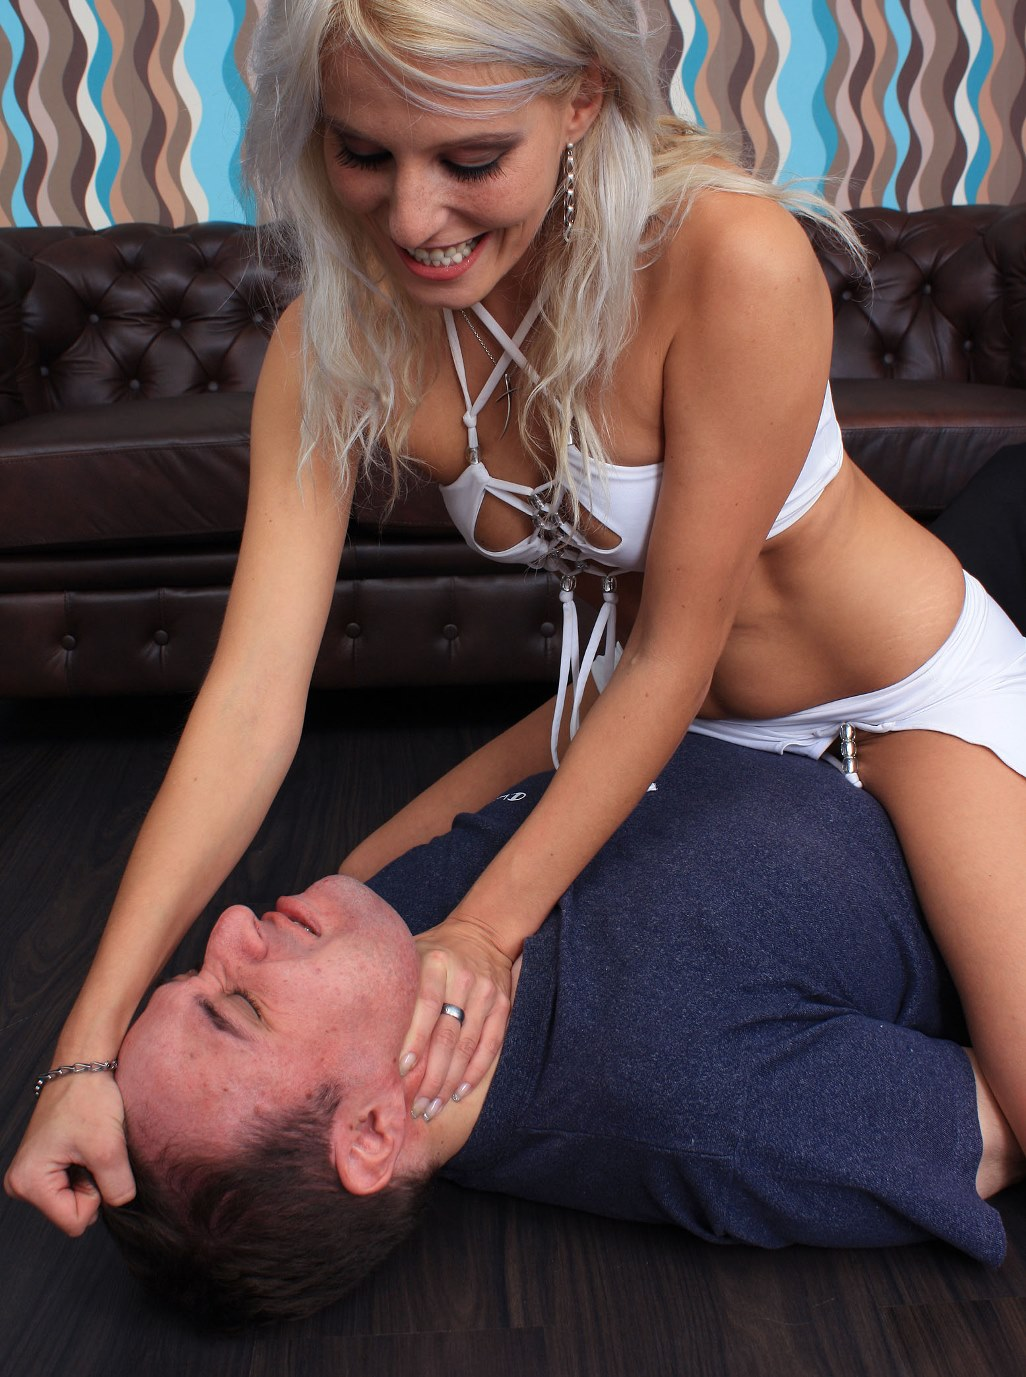 Cruel German Blond Mistress Melissa Smothers Her Slave For Perverted Pleasure